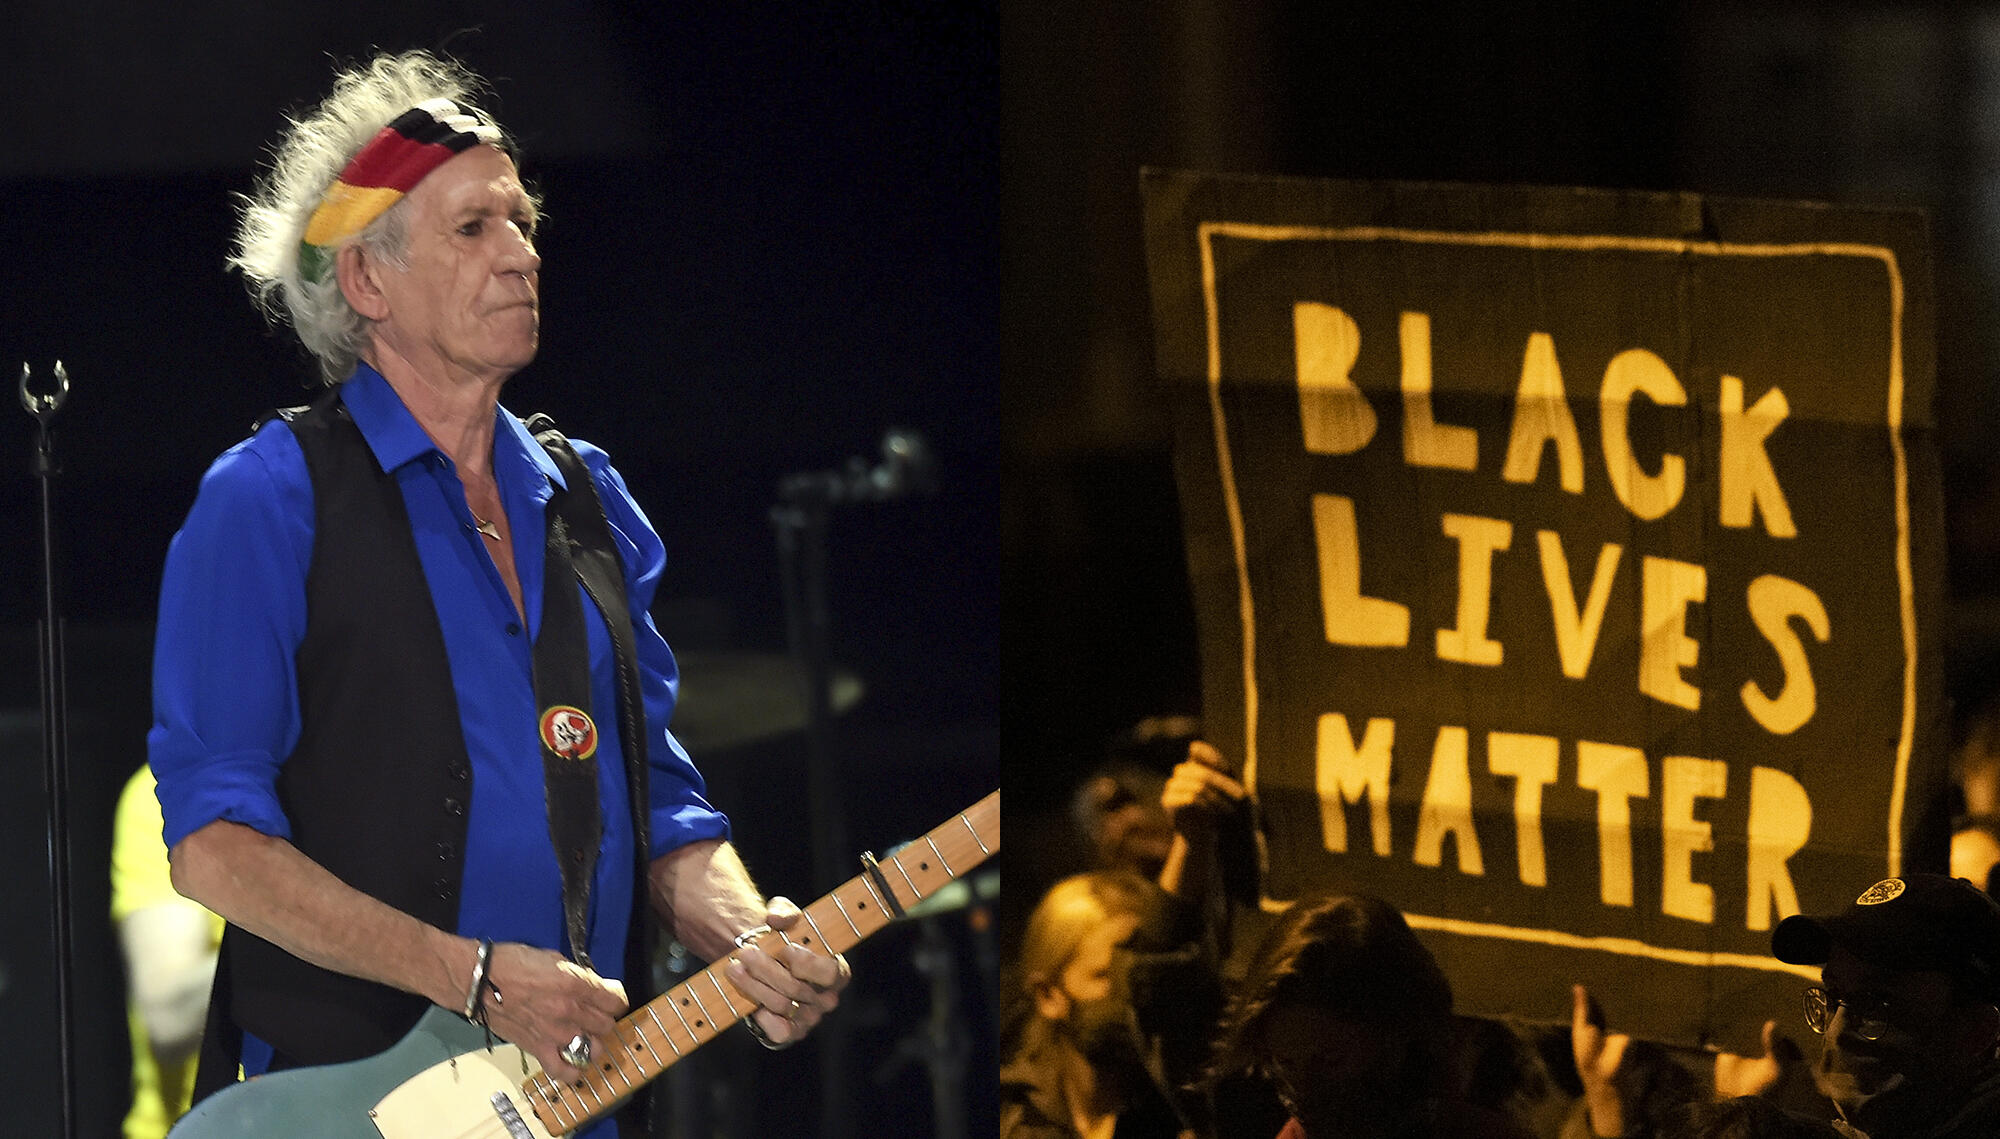 Keith Richards Applauds Black Lives Matter: 'It's About Bloody Time'